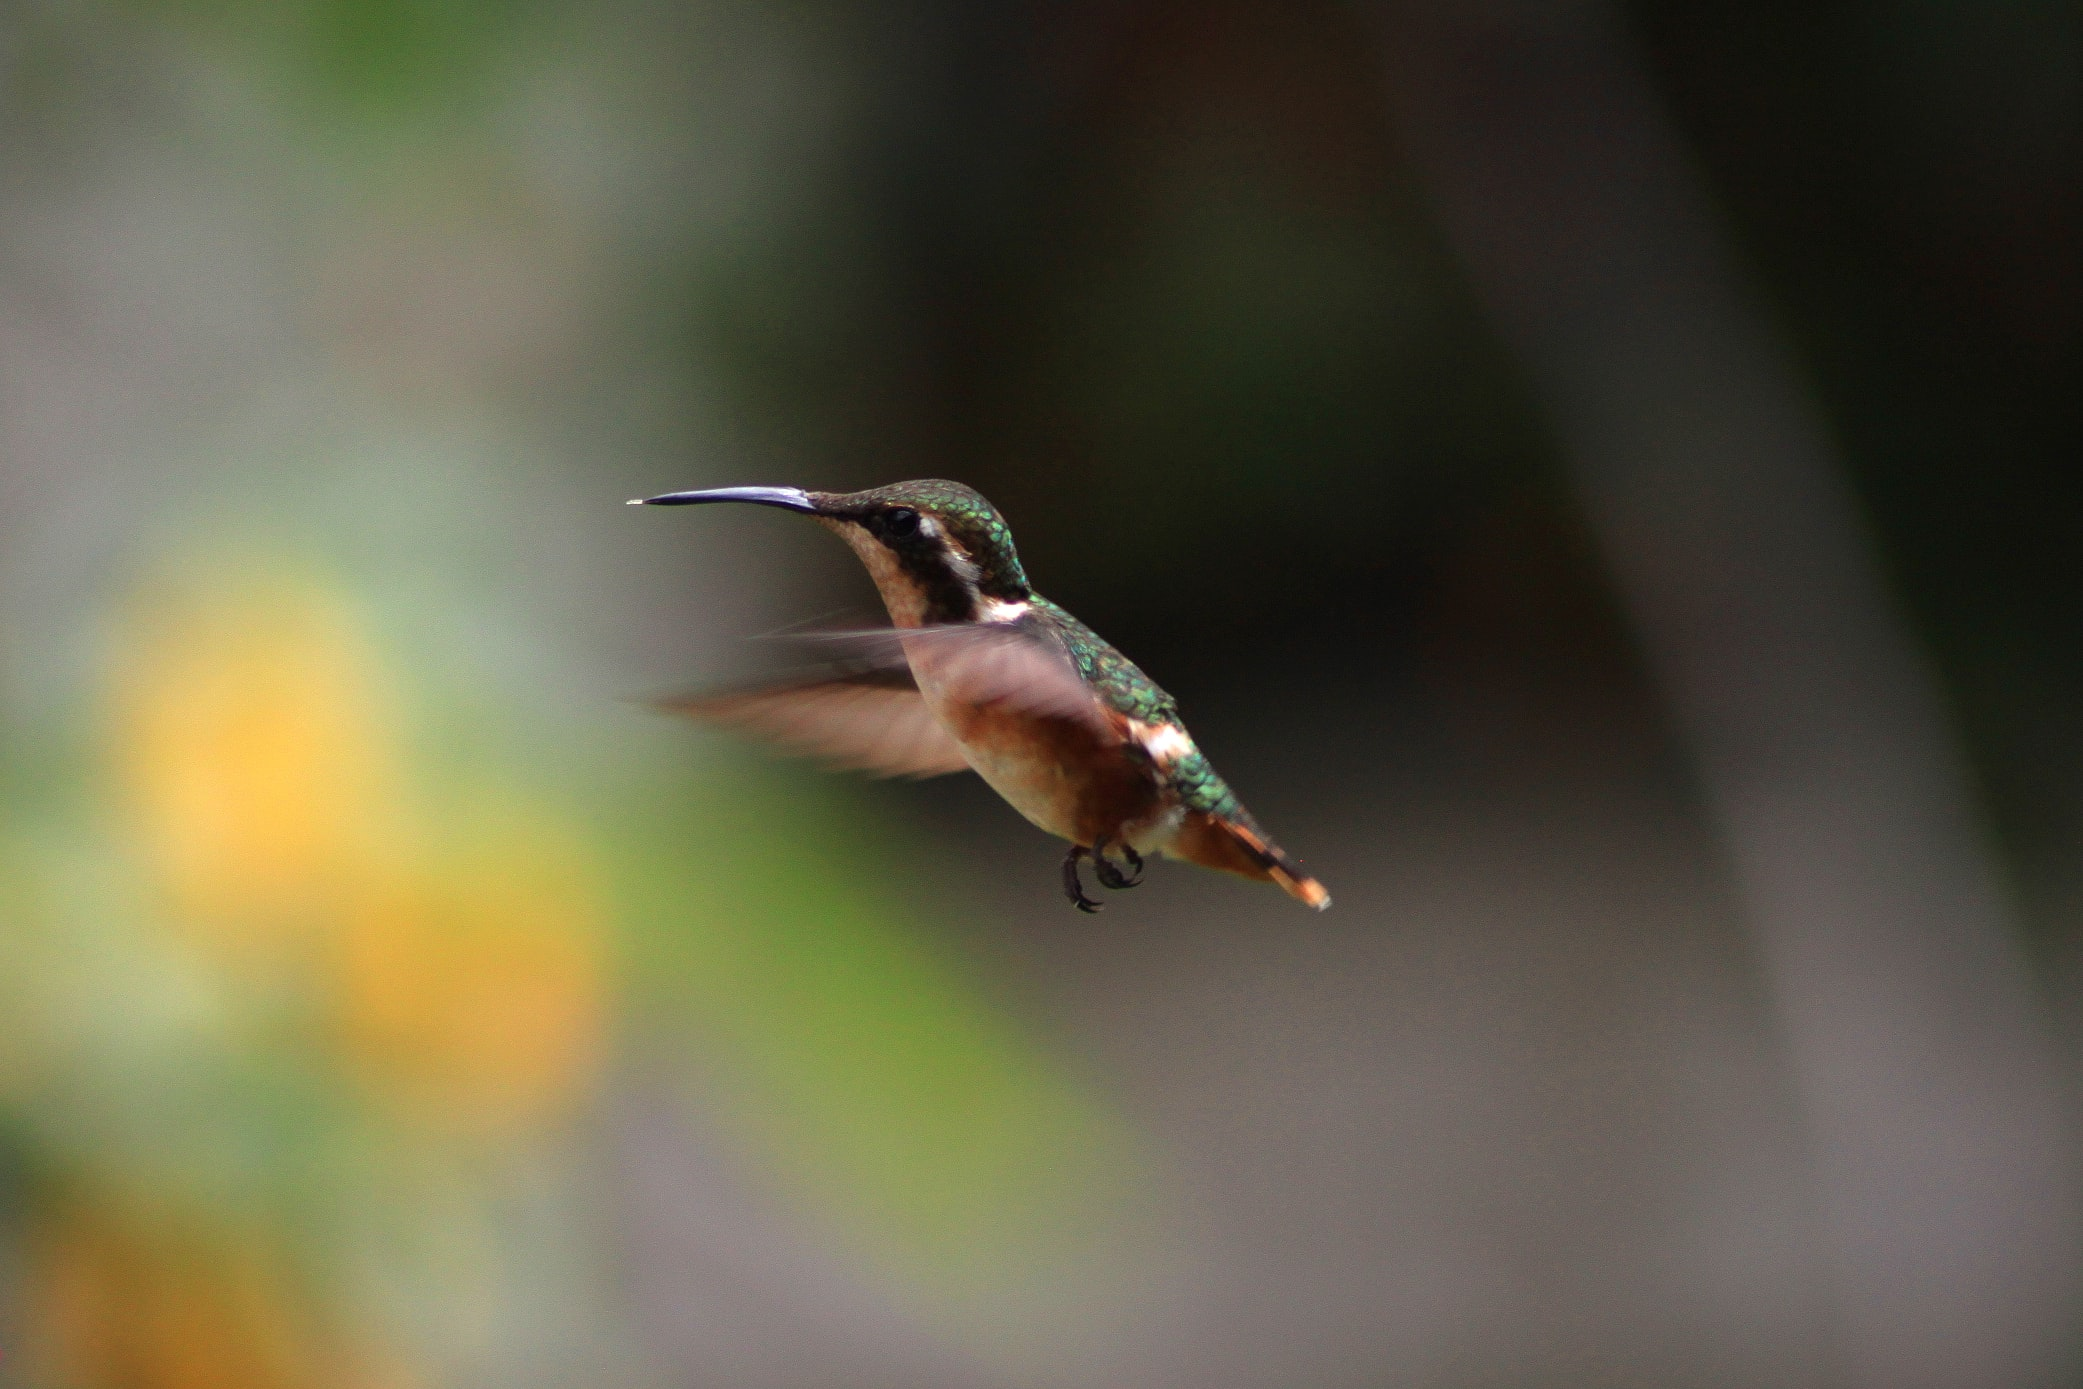 Green hummingbird flying mid-air in the wild